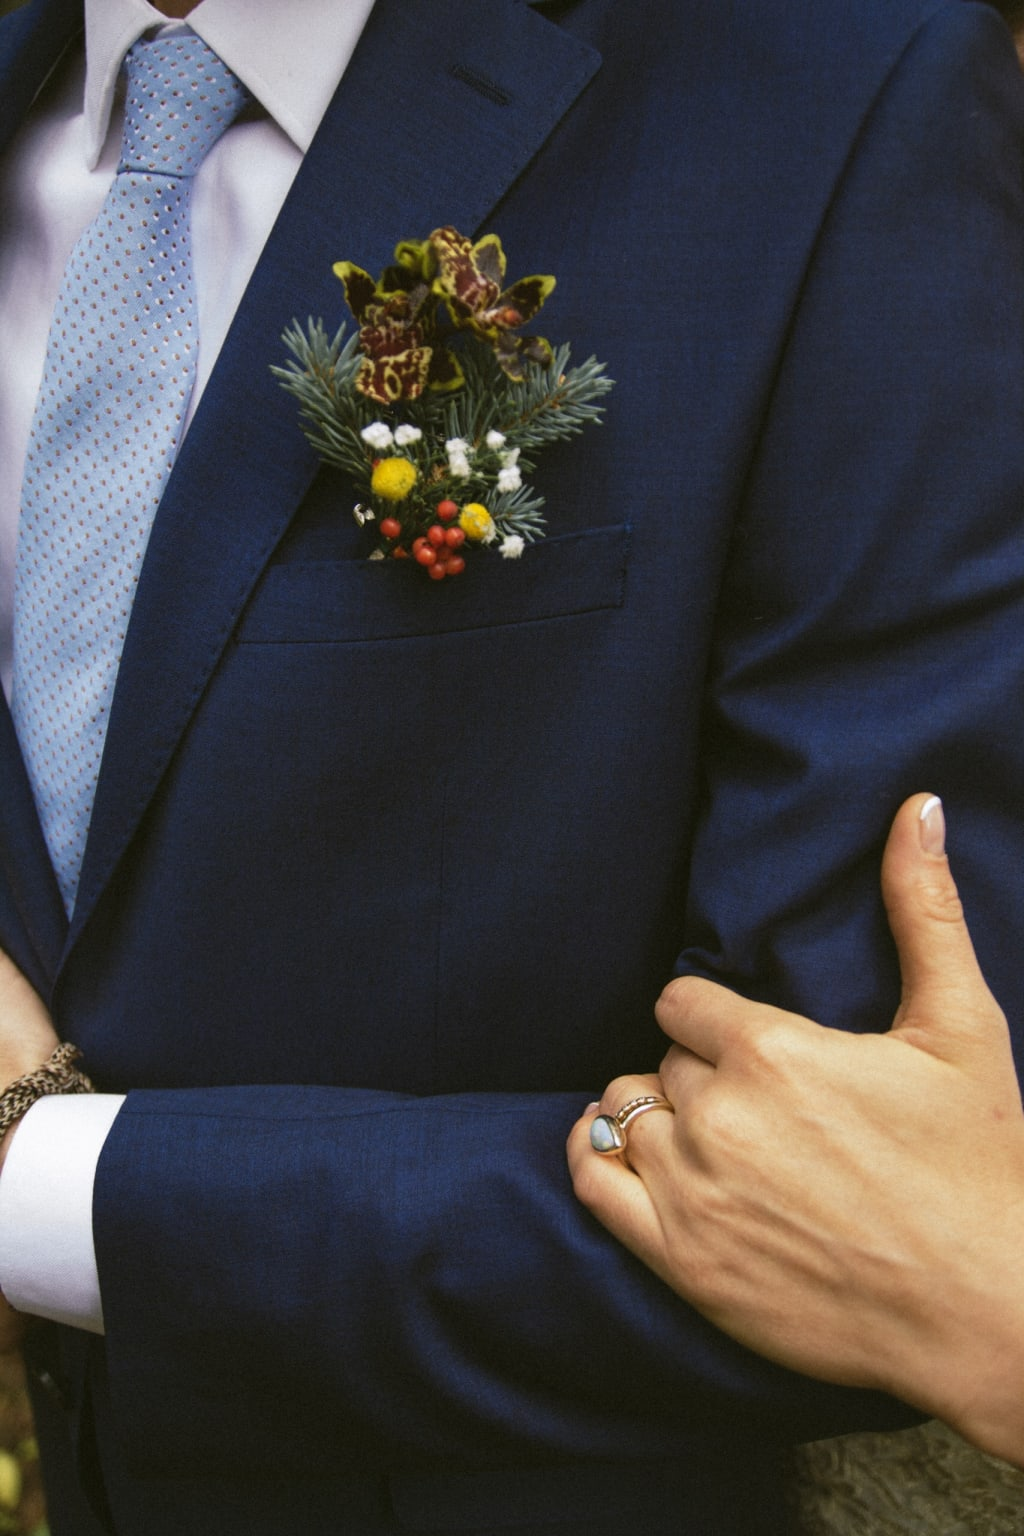 Taking Your Own Wedding Photographs